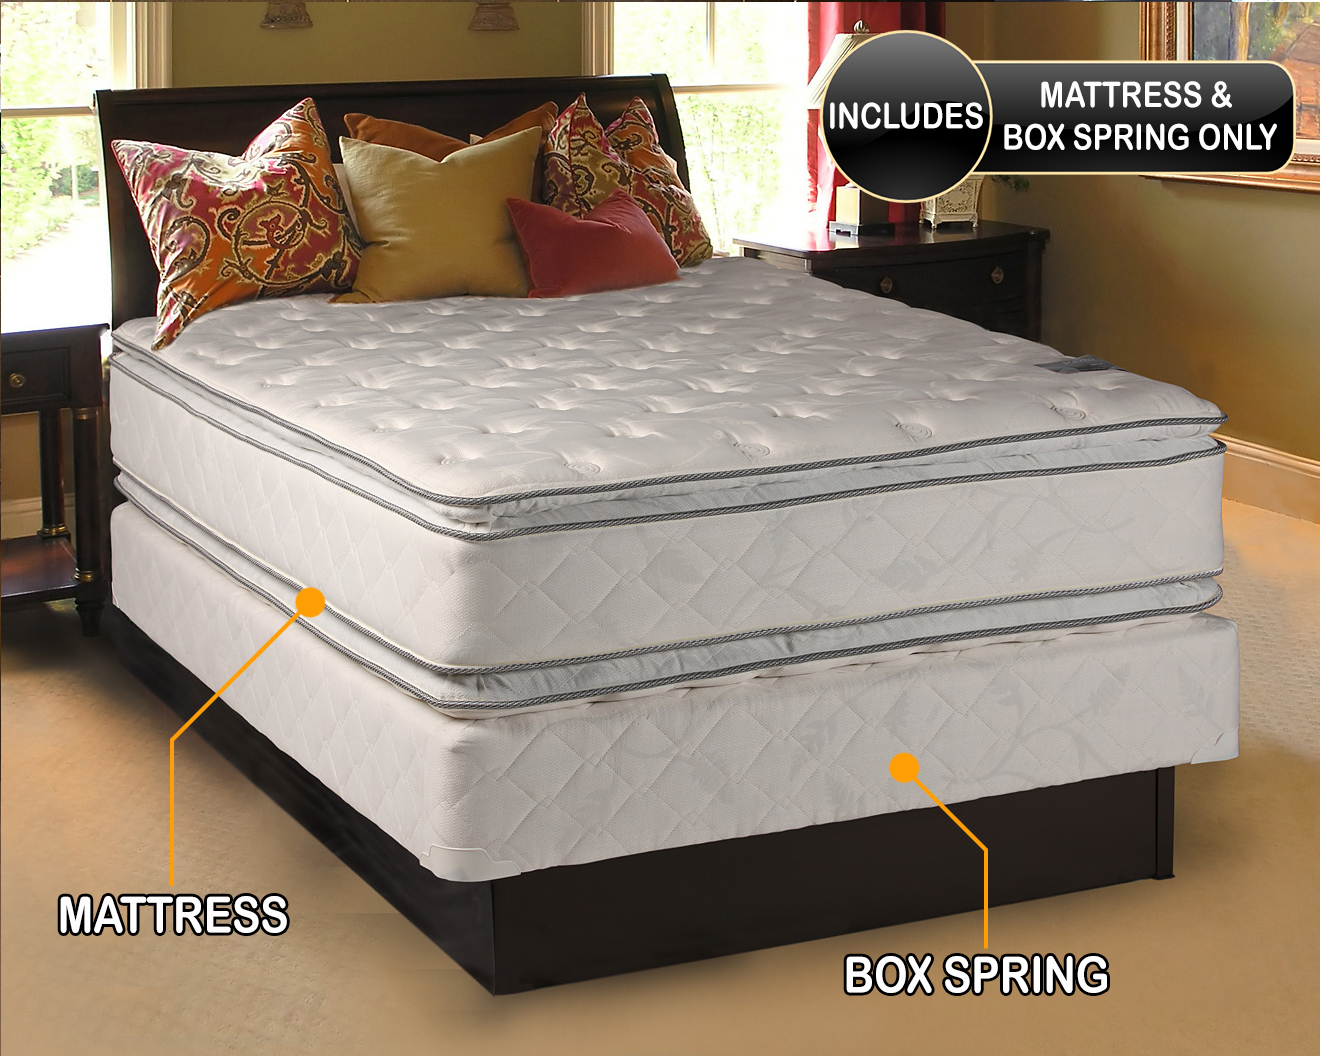 dream solutions double sided pillowtop mattress and box spring set twin sleep system with enhanced cushion support fully assembled great for your